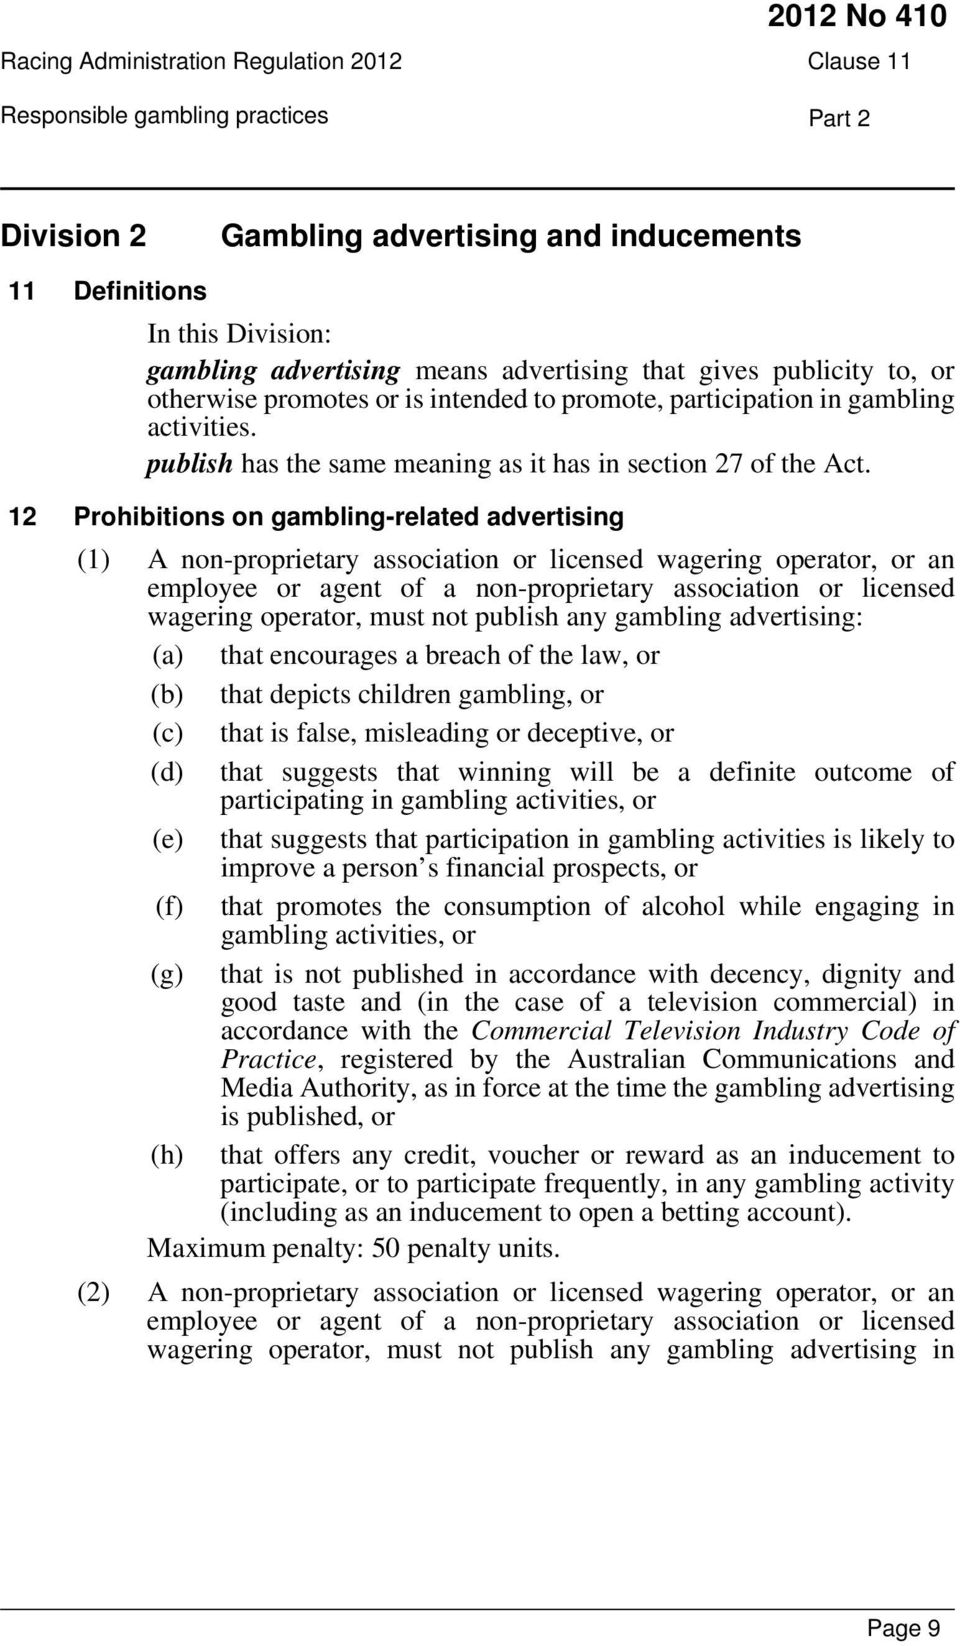 12 Prohibitions on gambling-related advertising (1) A non-proprietary association or licensed wagering operator, or an employee or agent of a non-proprietary association or licensed wagering